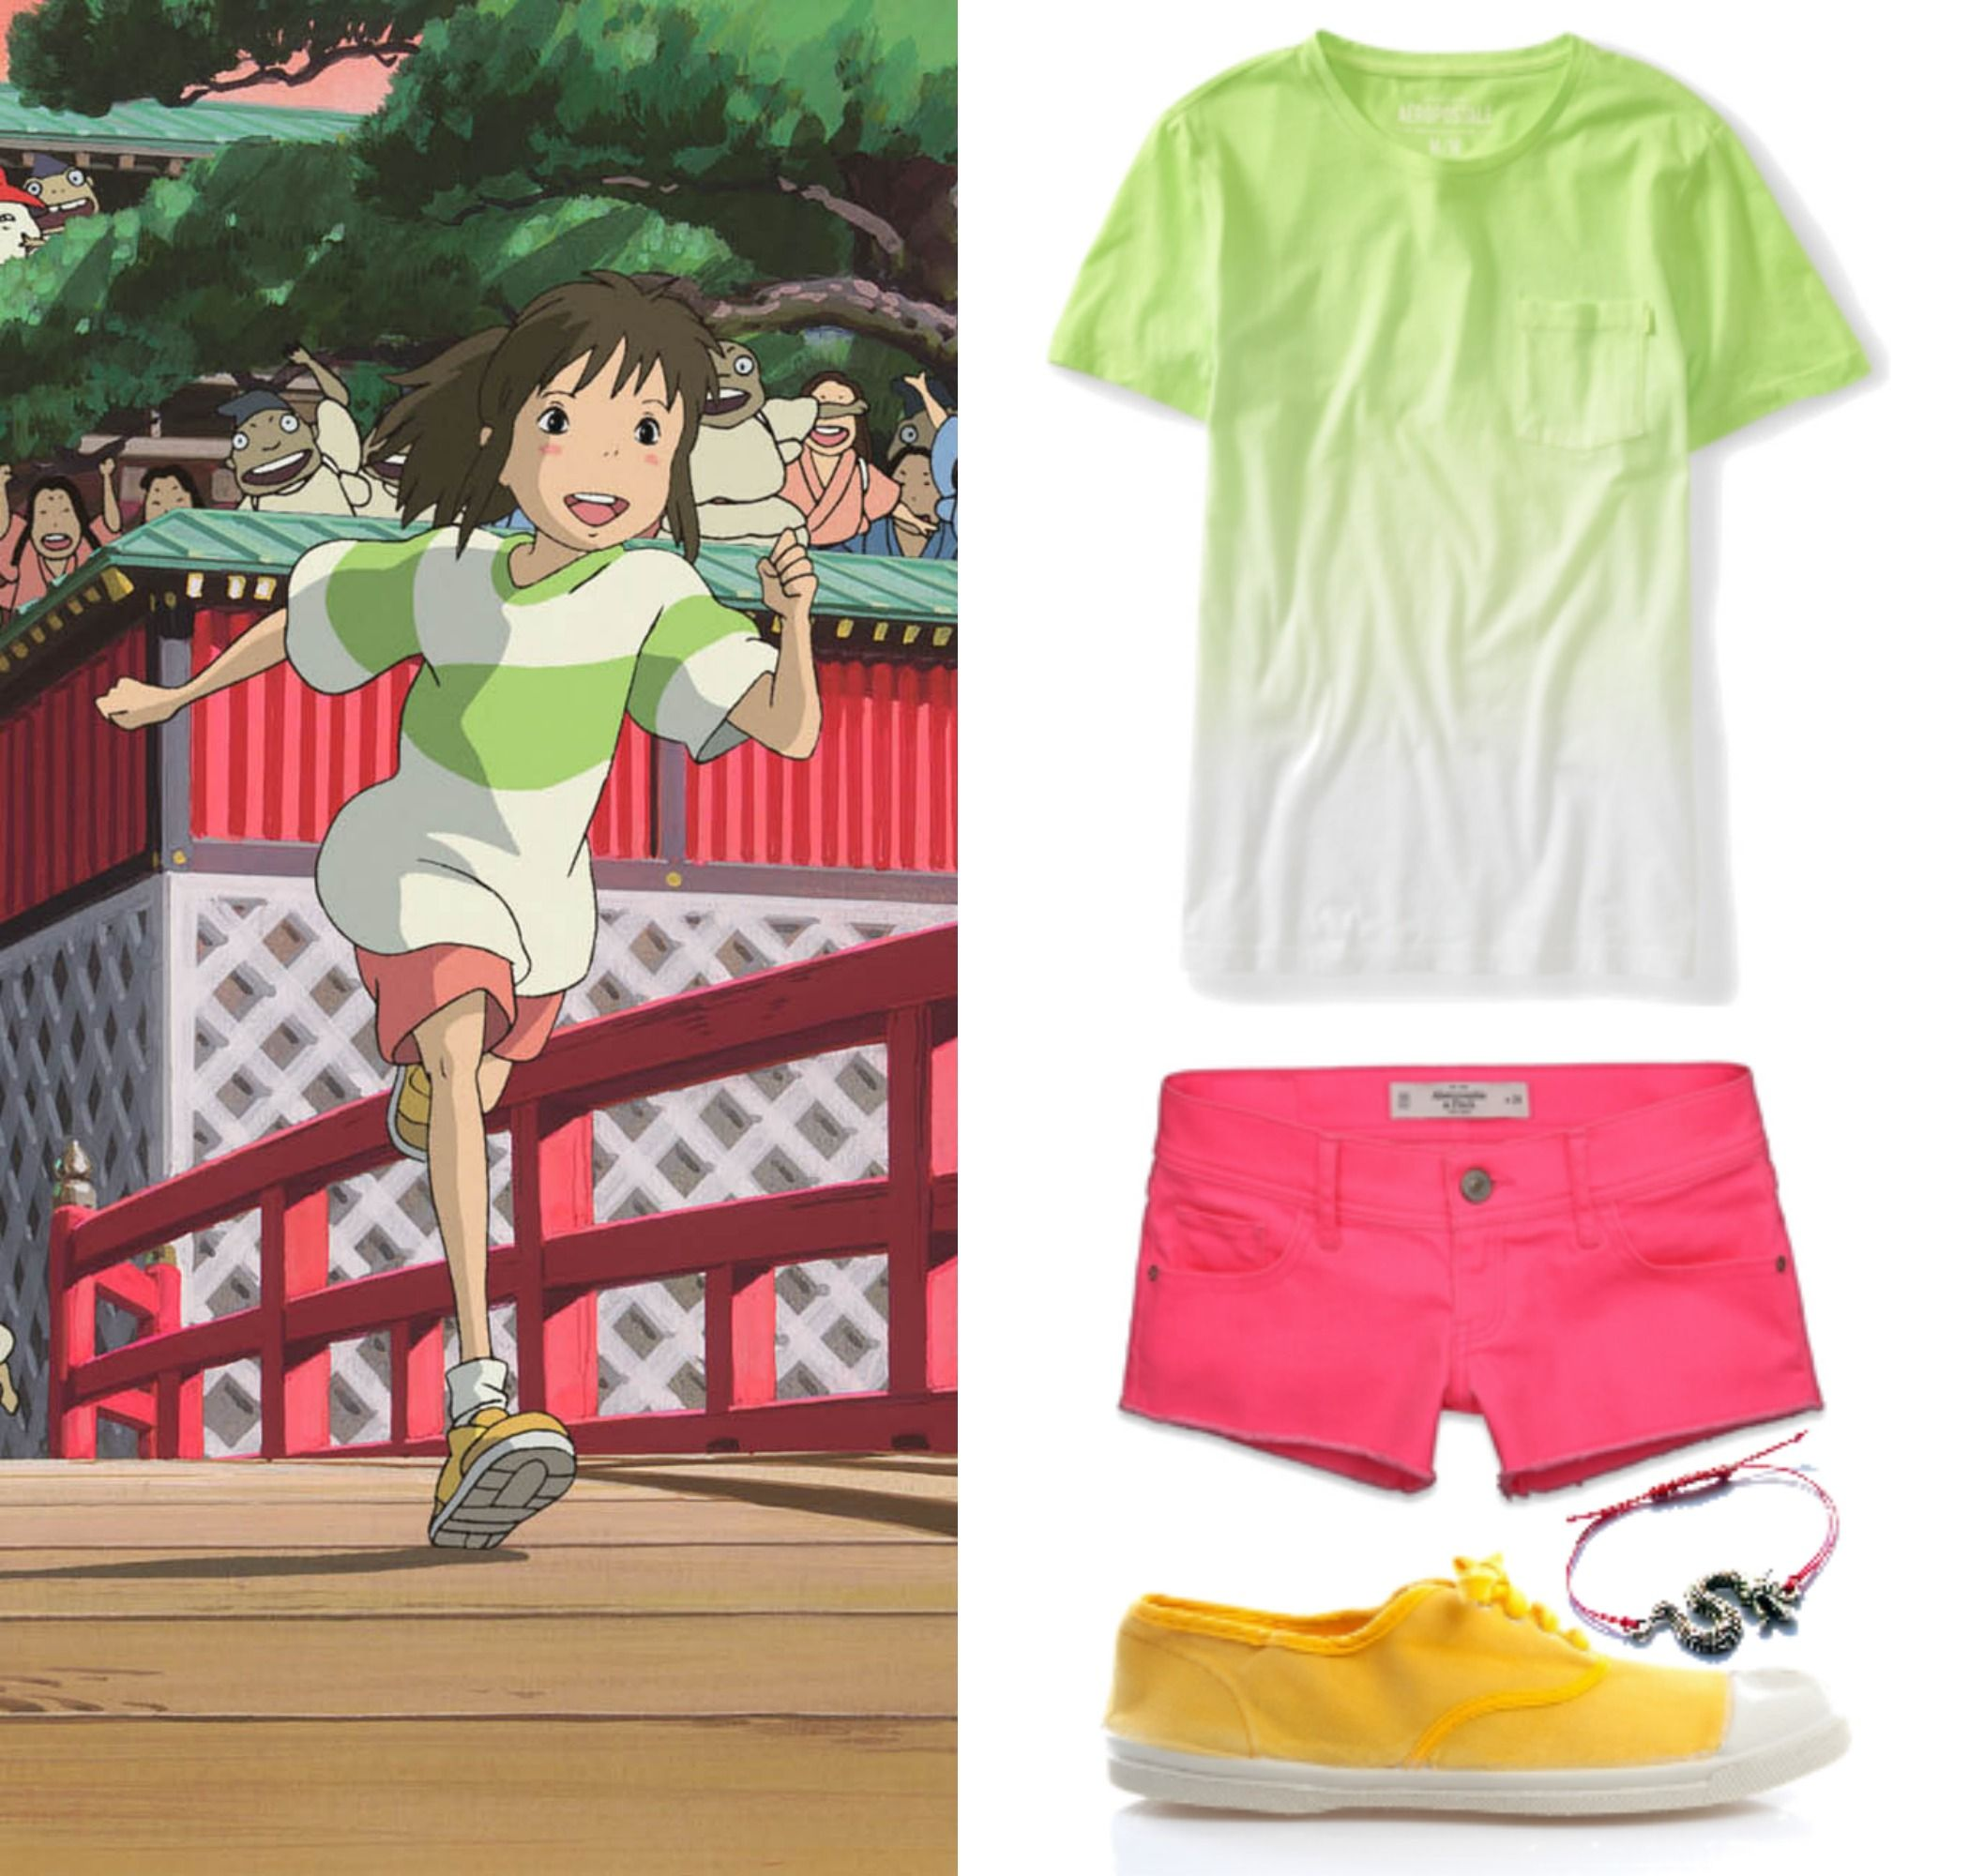 Spirited Away Chihiro Casual Outfit Costume Studio Ghibli Inspired Outfits T Shirt Short Pants Cosplay Set Chihiro Ogino Cosplay Costumes Women S Clothing